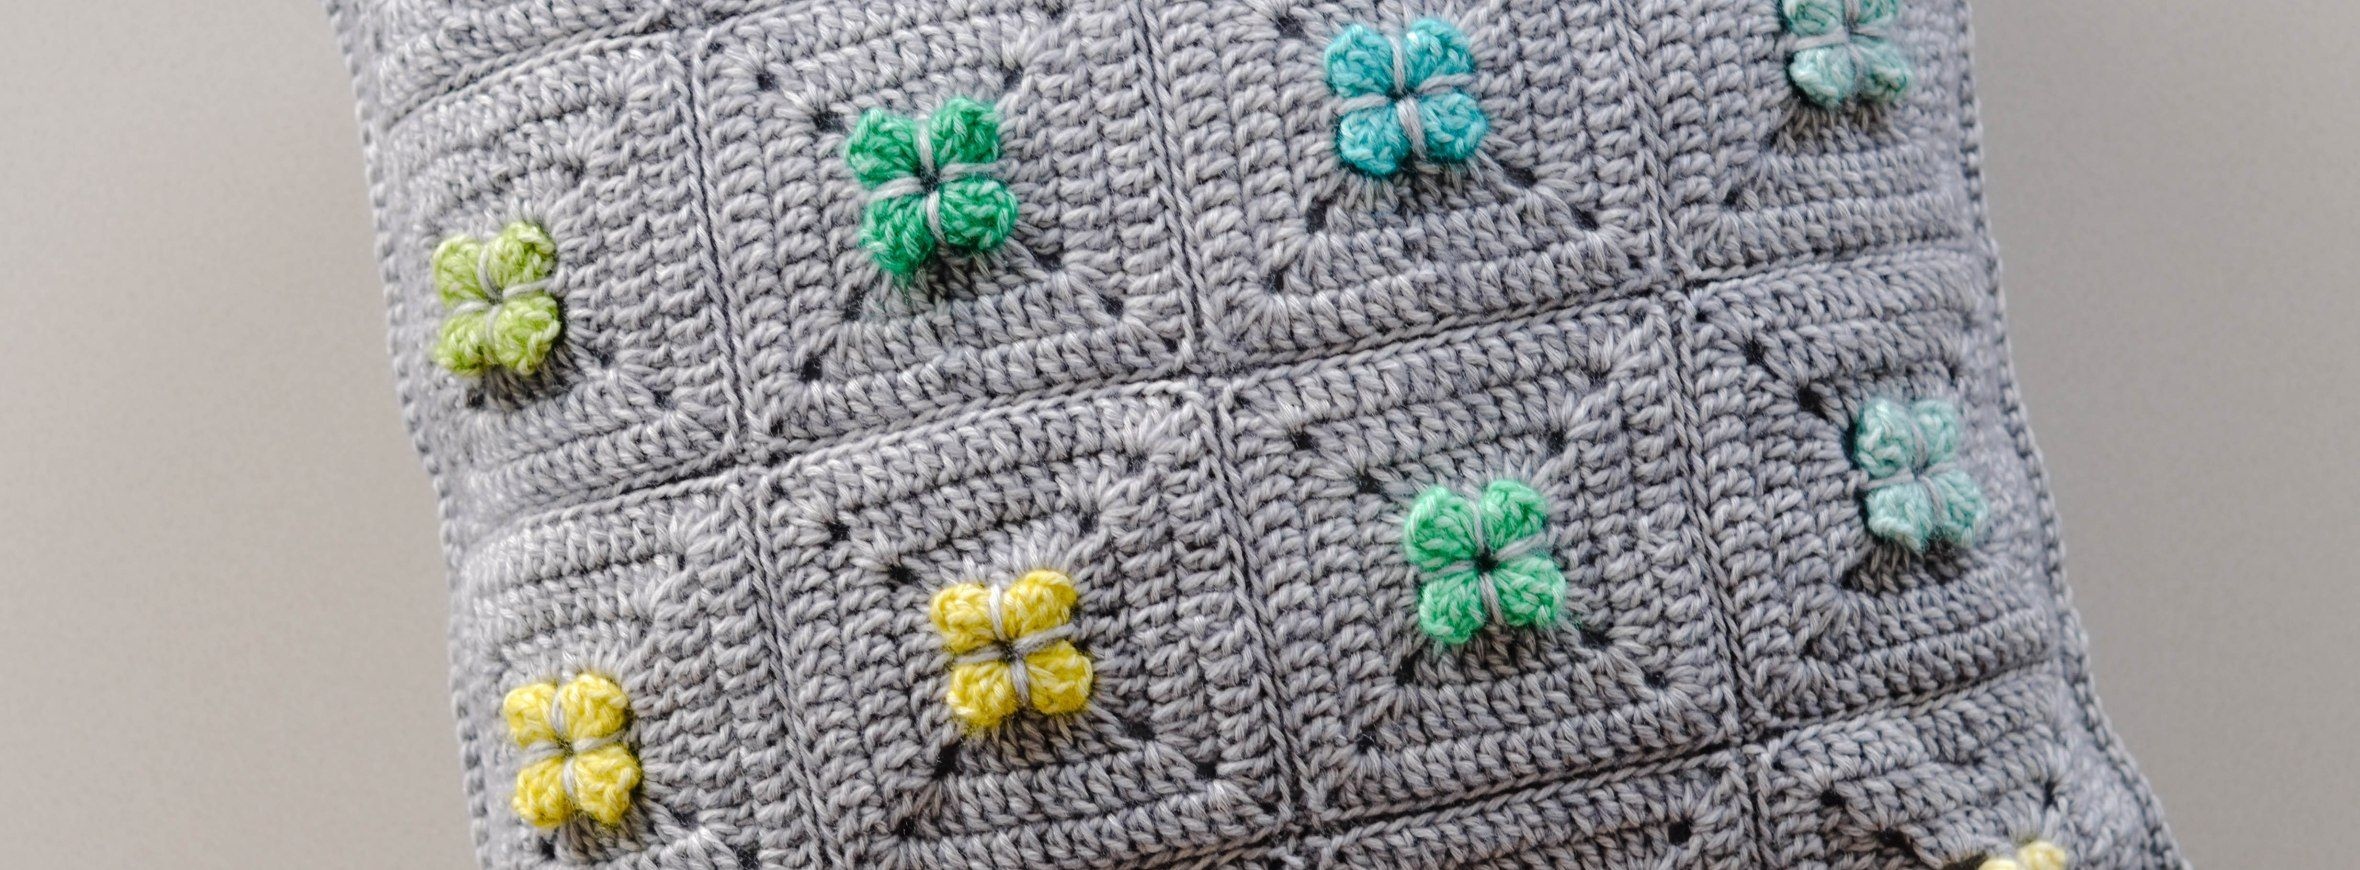 Cora Granny Square Pattern – The Loopy Stitch | Knitting and Crochet ...